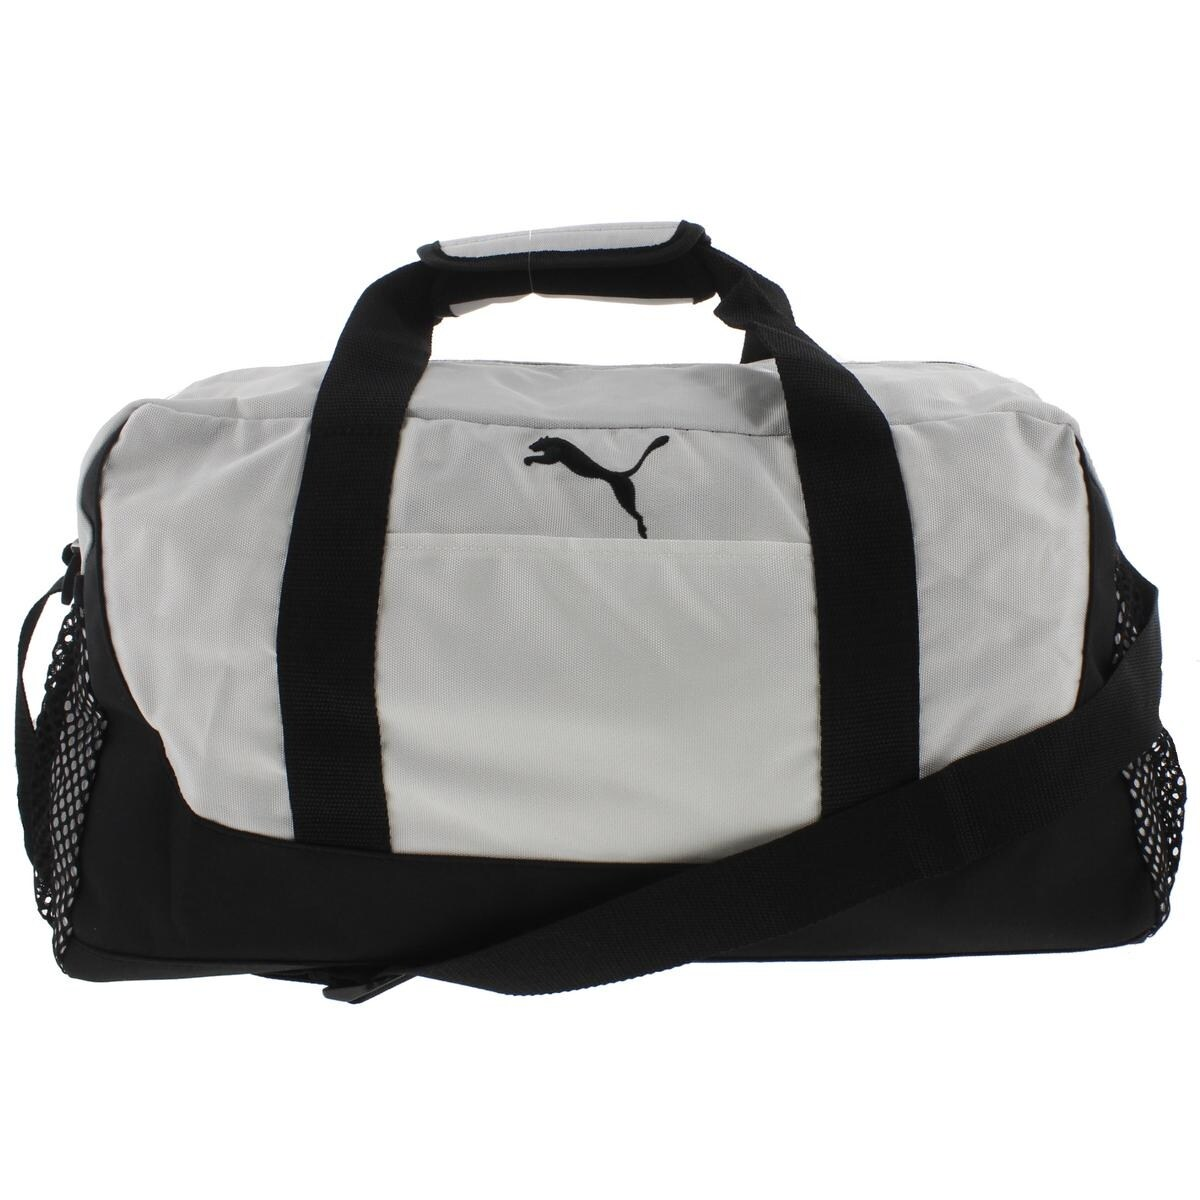 db820bca3 Shop Puma Womens Evercat Interval Duffle Bag Convertible Logo - Free  Shipping On Orders Over $45 - Overstock - 19487414